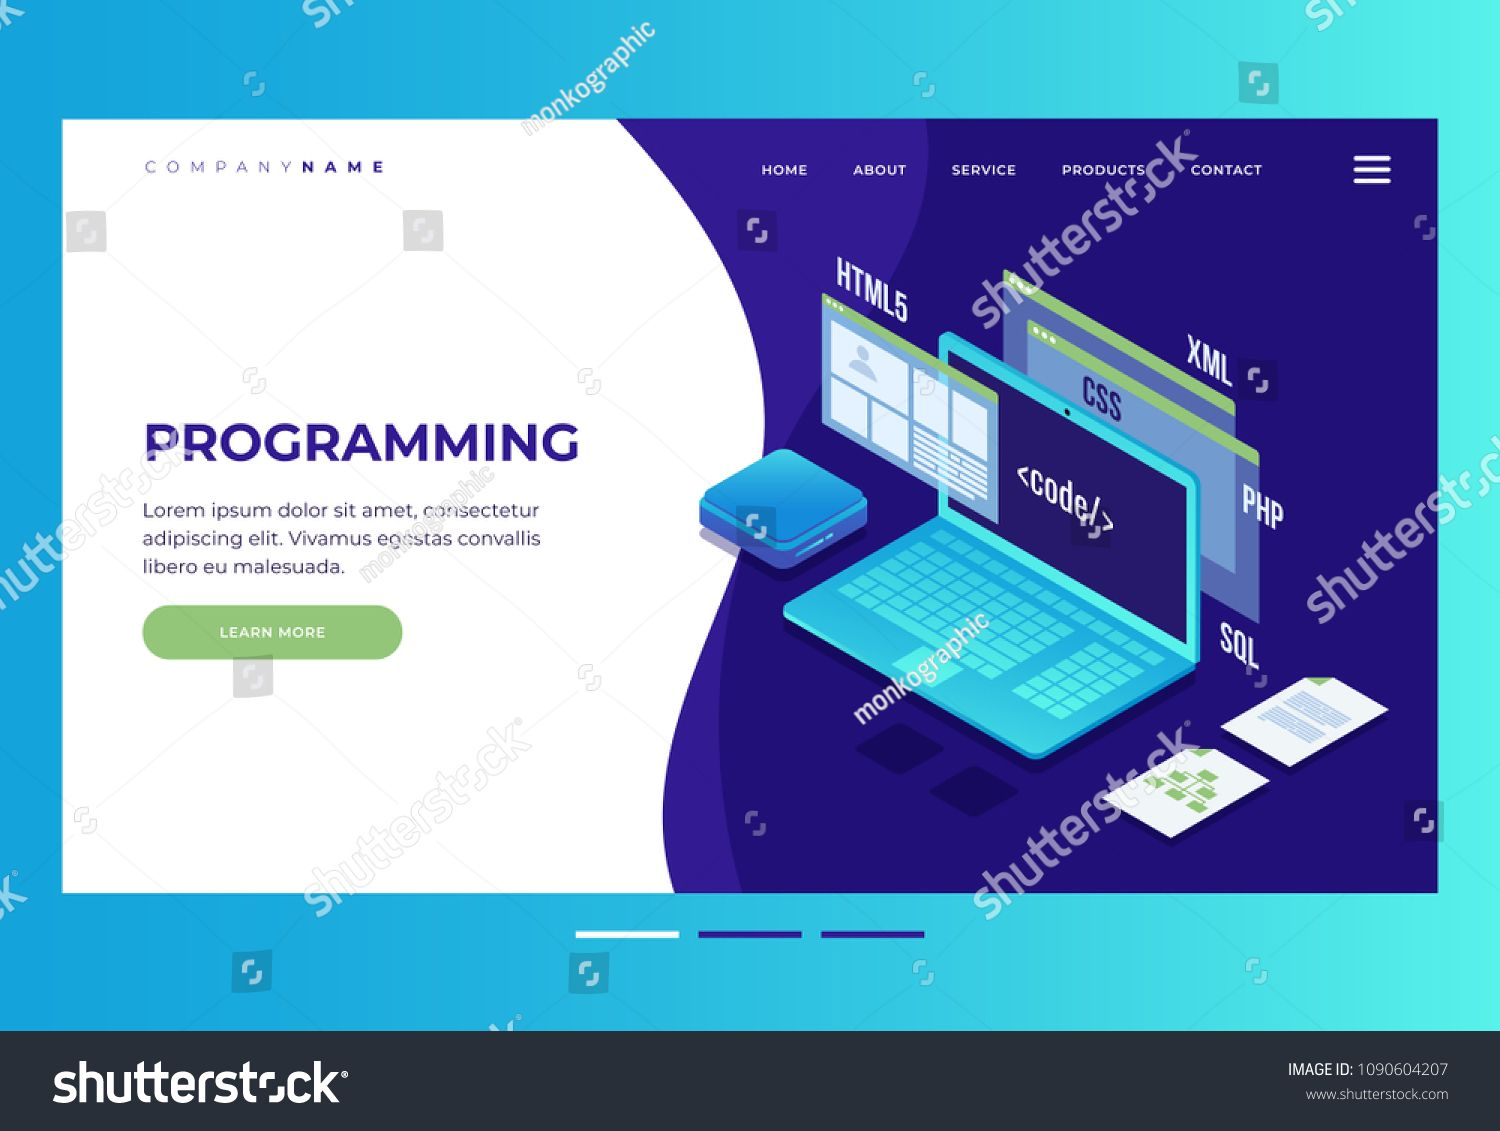 Header For Website Homepage Concept Of Web Development Programming And Coding Elements Of Interface And Browser Win Concept Web Web Development Development